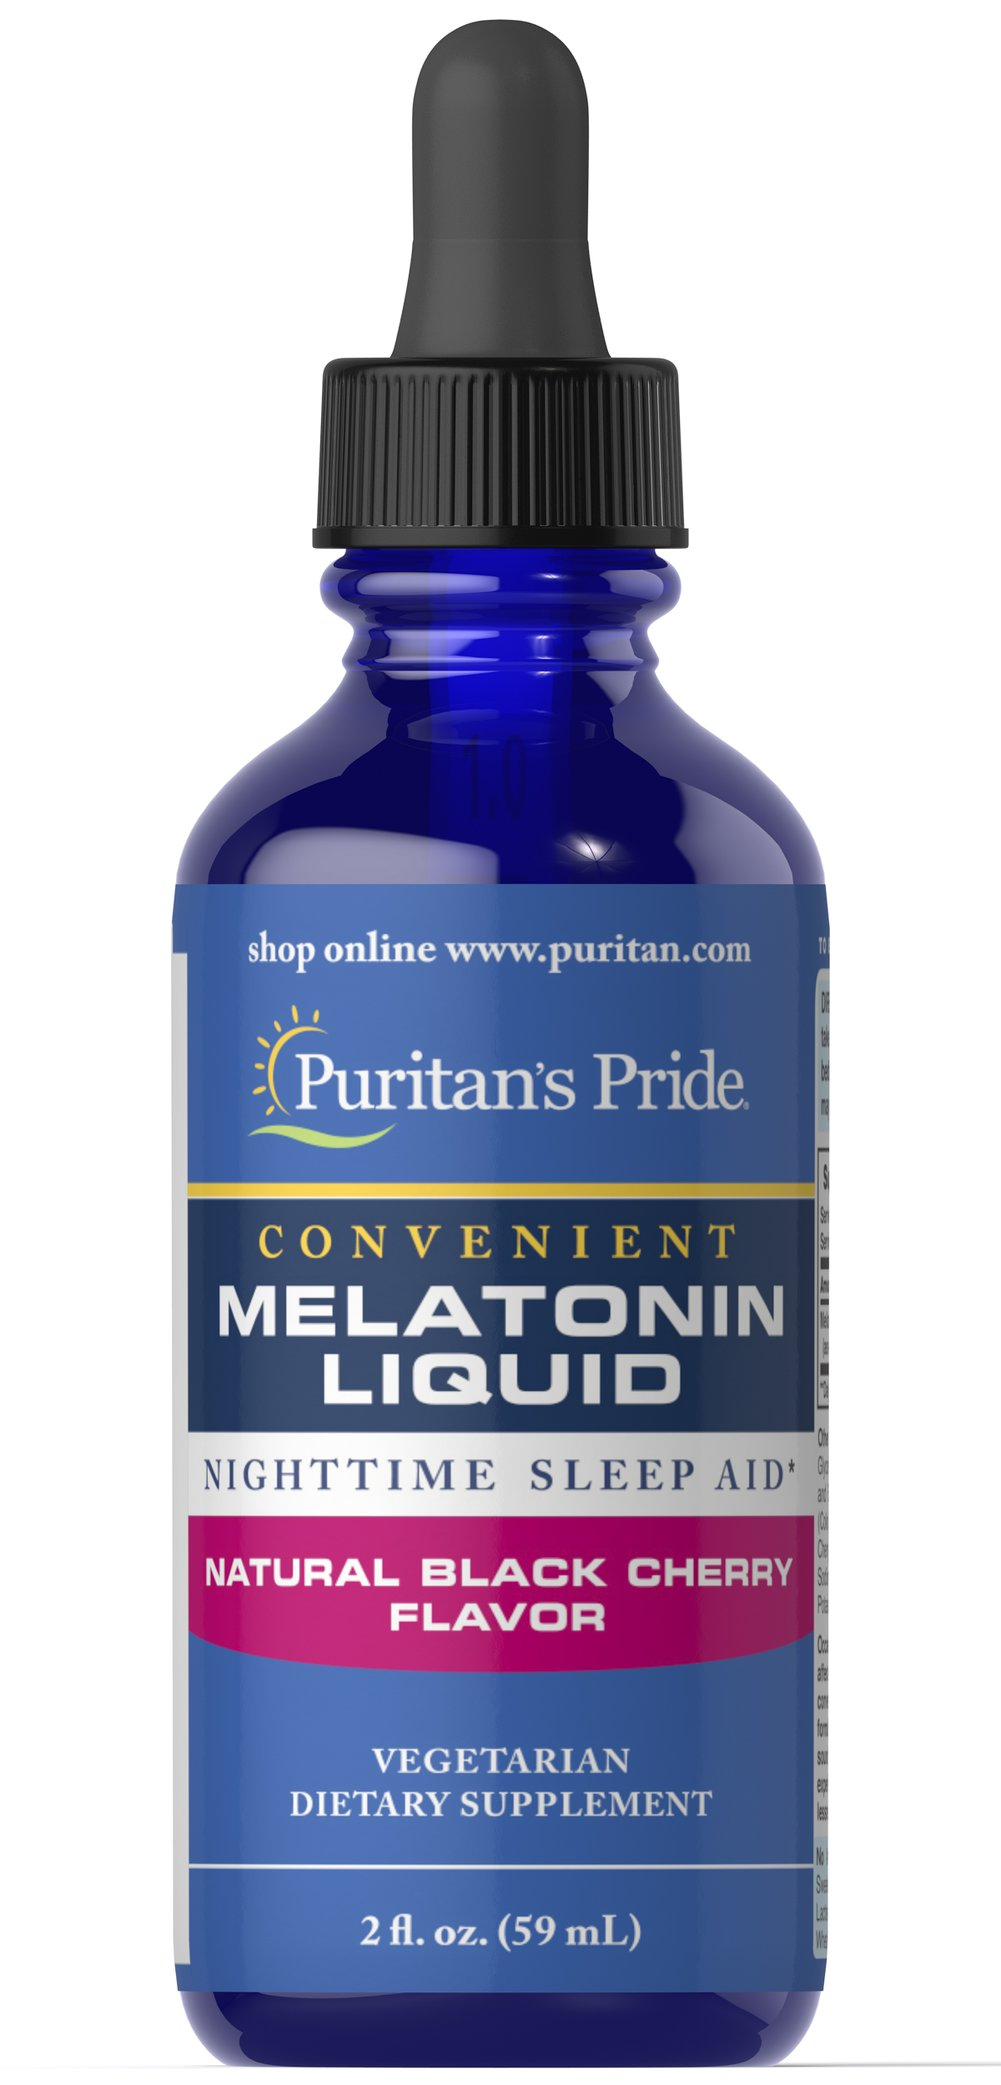 Sublingual Melatonin Cherry 1 mg <p>Sometimes it's hard to unwind after a long day. That's when it's time for Melatonin, a hormone naturally produced in the body that is closely involved in the natural sleep cycle.** It's a terrific choice if you experience occasional sleeplessness or jet lag, or if you want to improve your quality of rest.**  Melatonin helps you fall asleep quickly and stay asleep longer**<br /></p> 2 oz Liquid 1 mg $8.99